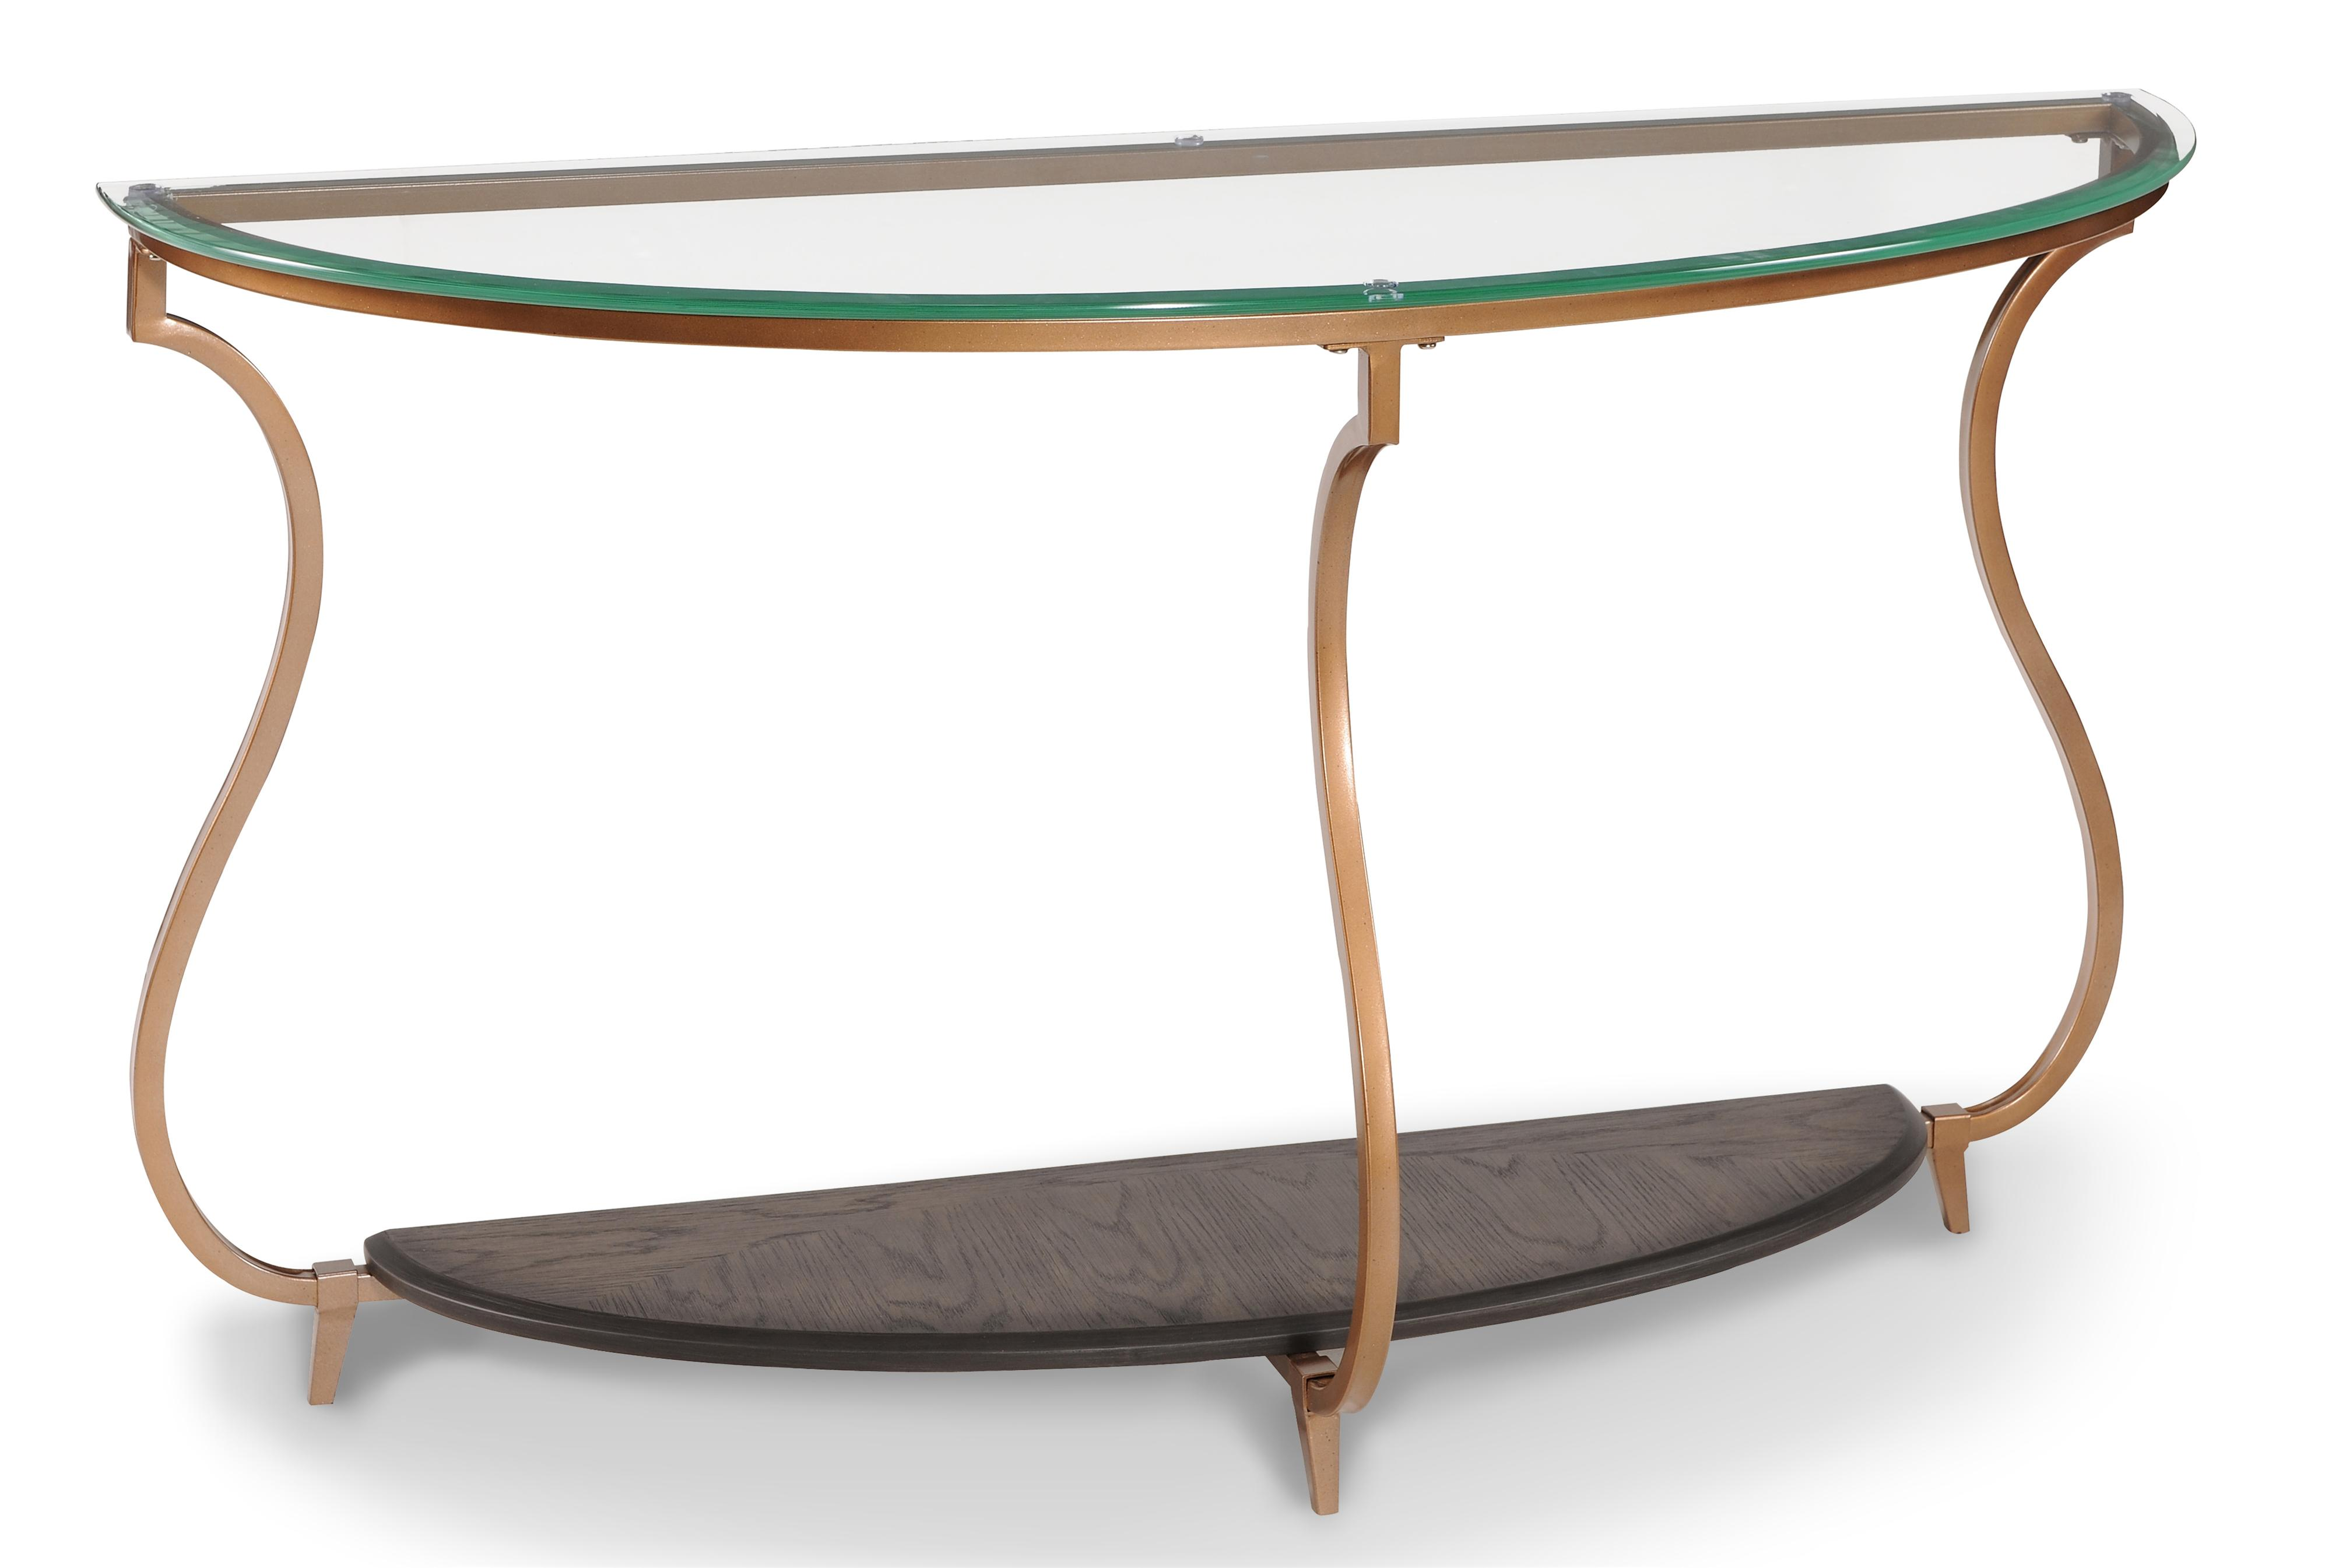 transitional demilune sofa table with gold-finished legs and glass